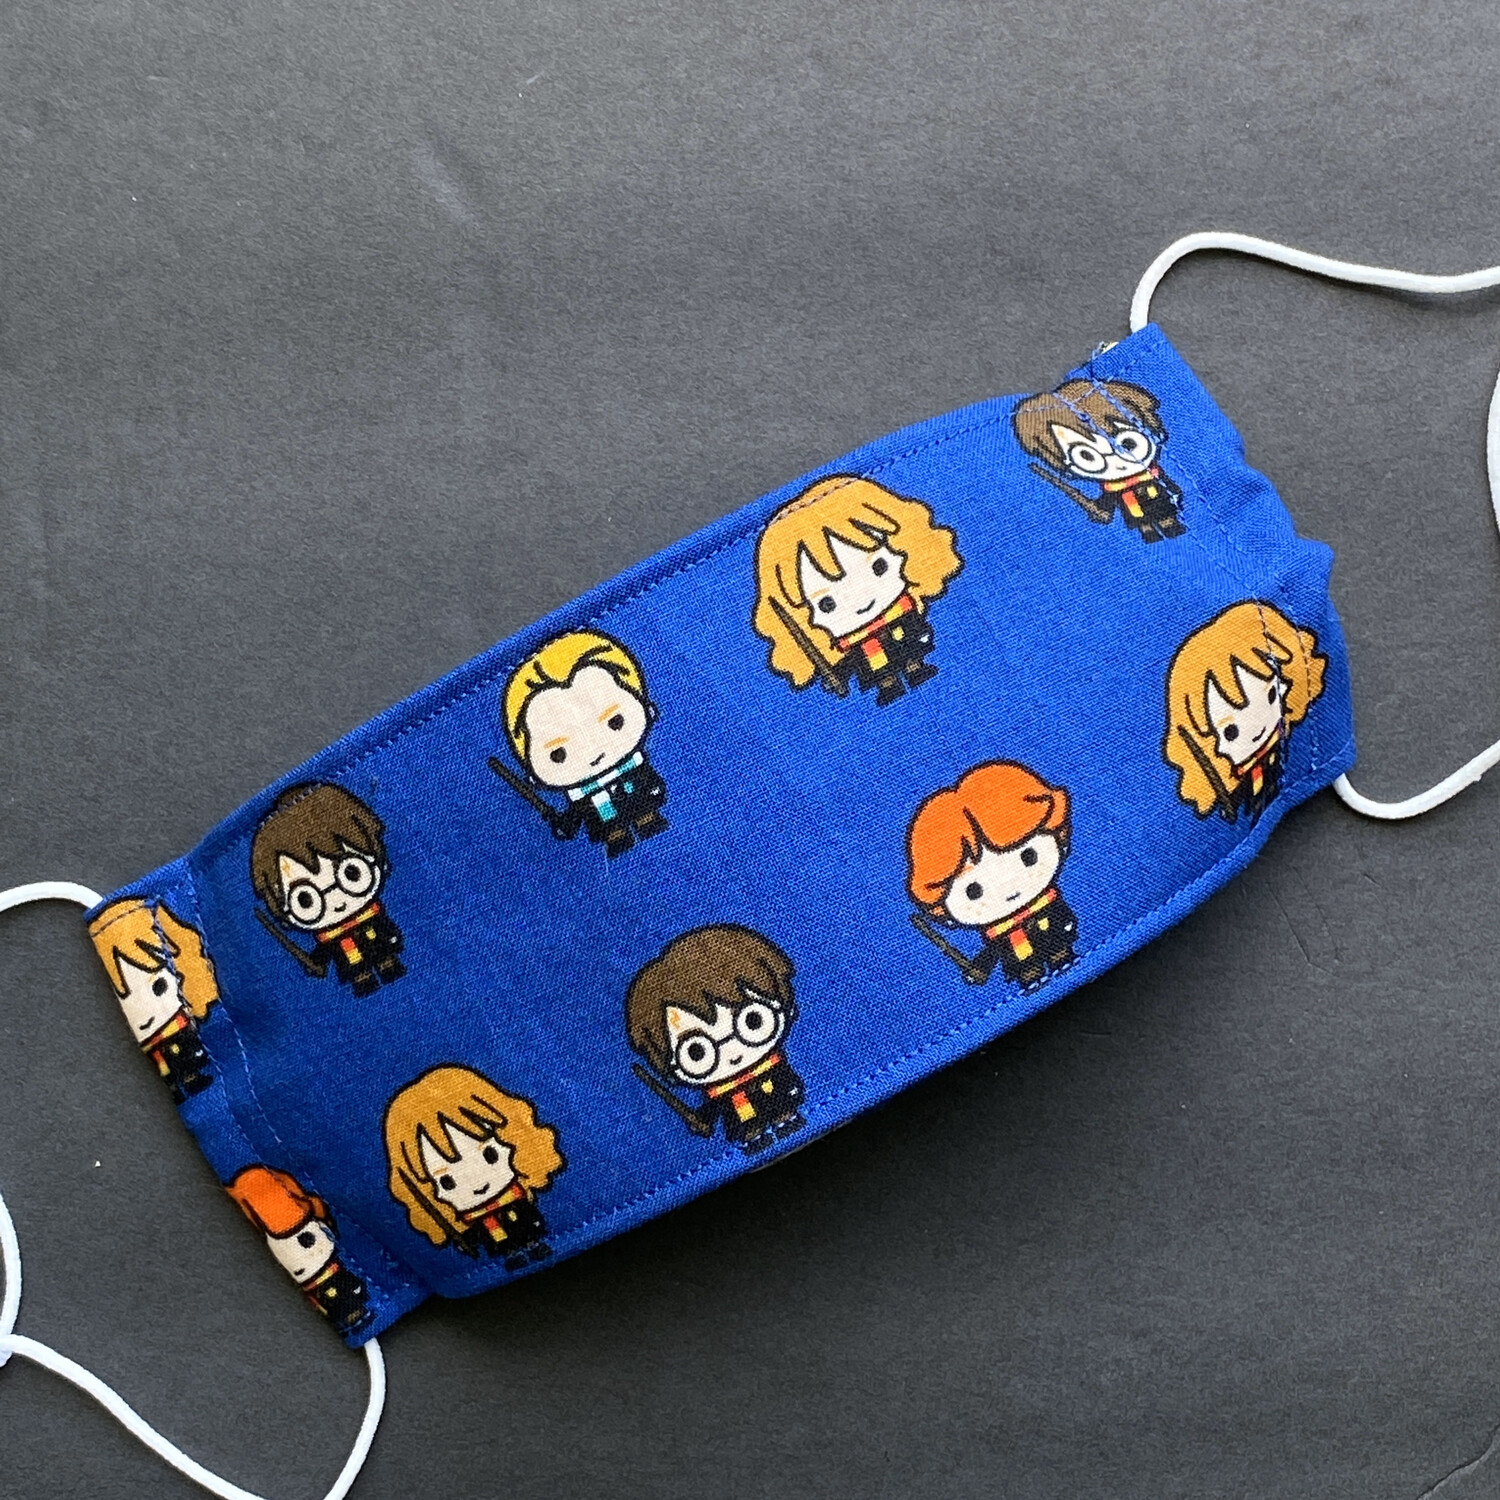 EasyFit Harry Potter Blue Kawaii Reusable Cloth Face Mask